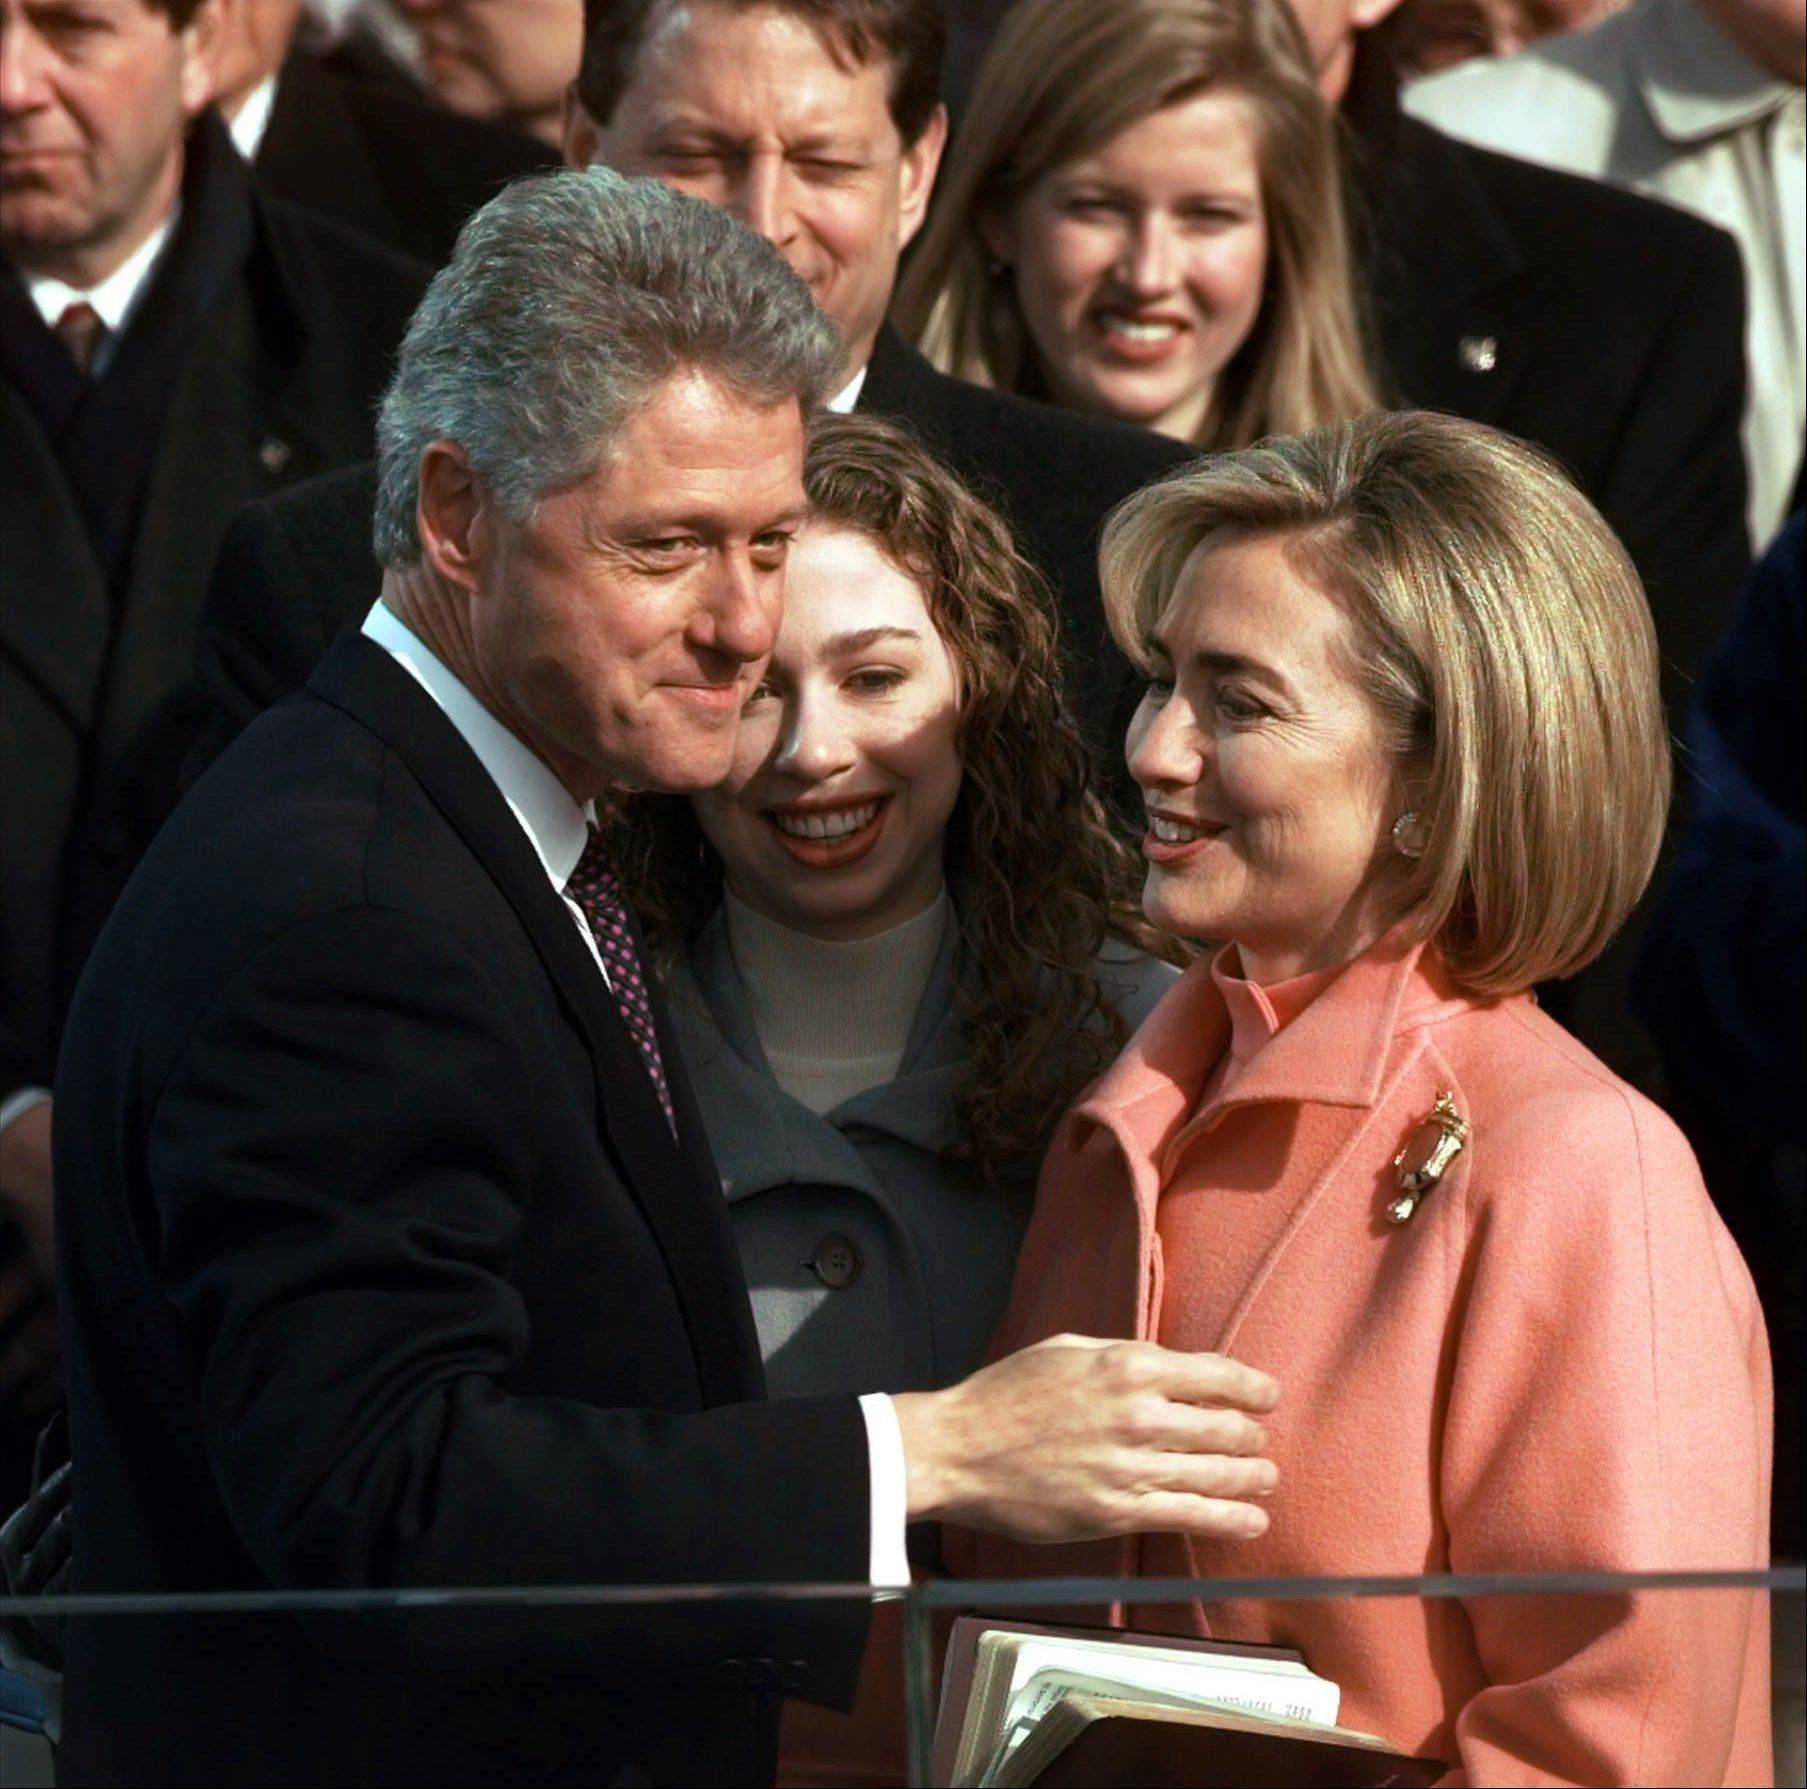 President Clinton, his daughter Chelsea and wife Hillary talk after Clinton was sworn in for his second term by Supreme Court Chief Justice William Rehnquist during the 53rd Presidential Inauguration Monday, Jan. 20, 1997, in Washington.